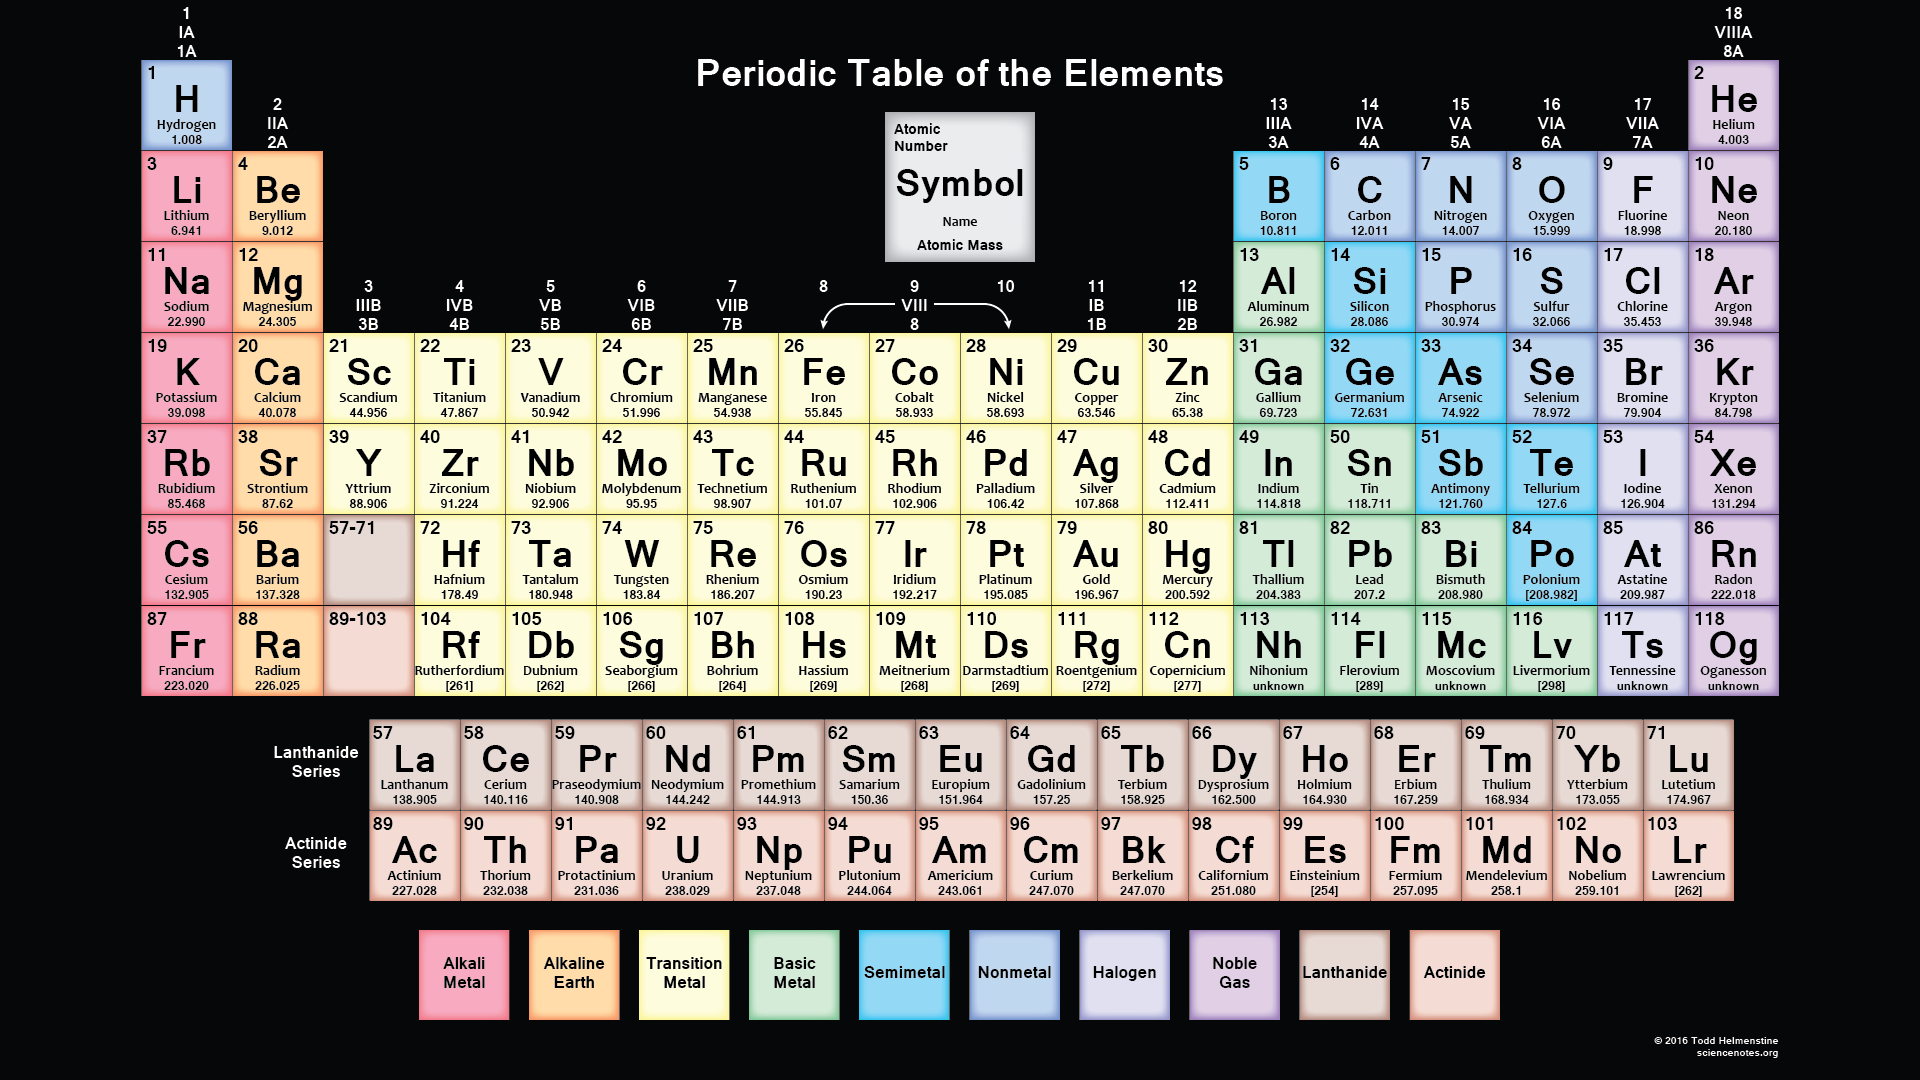 Here S A Free Printable Periodic Table With All 118 Element Names And Symbols If The Iupac